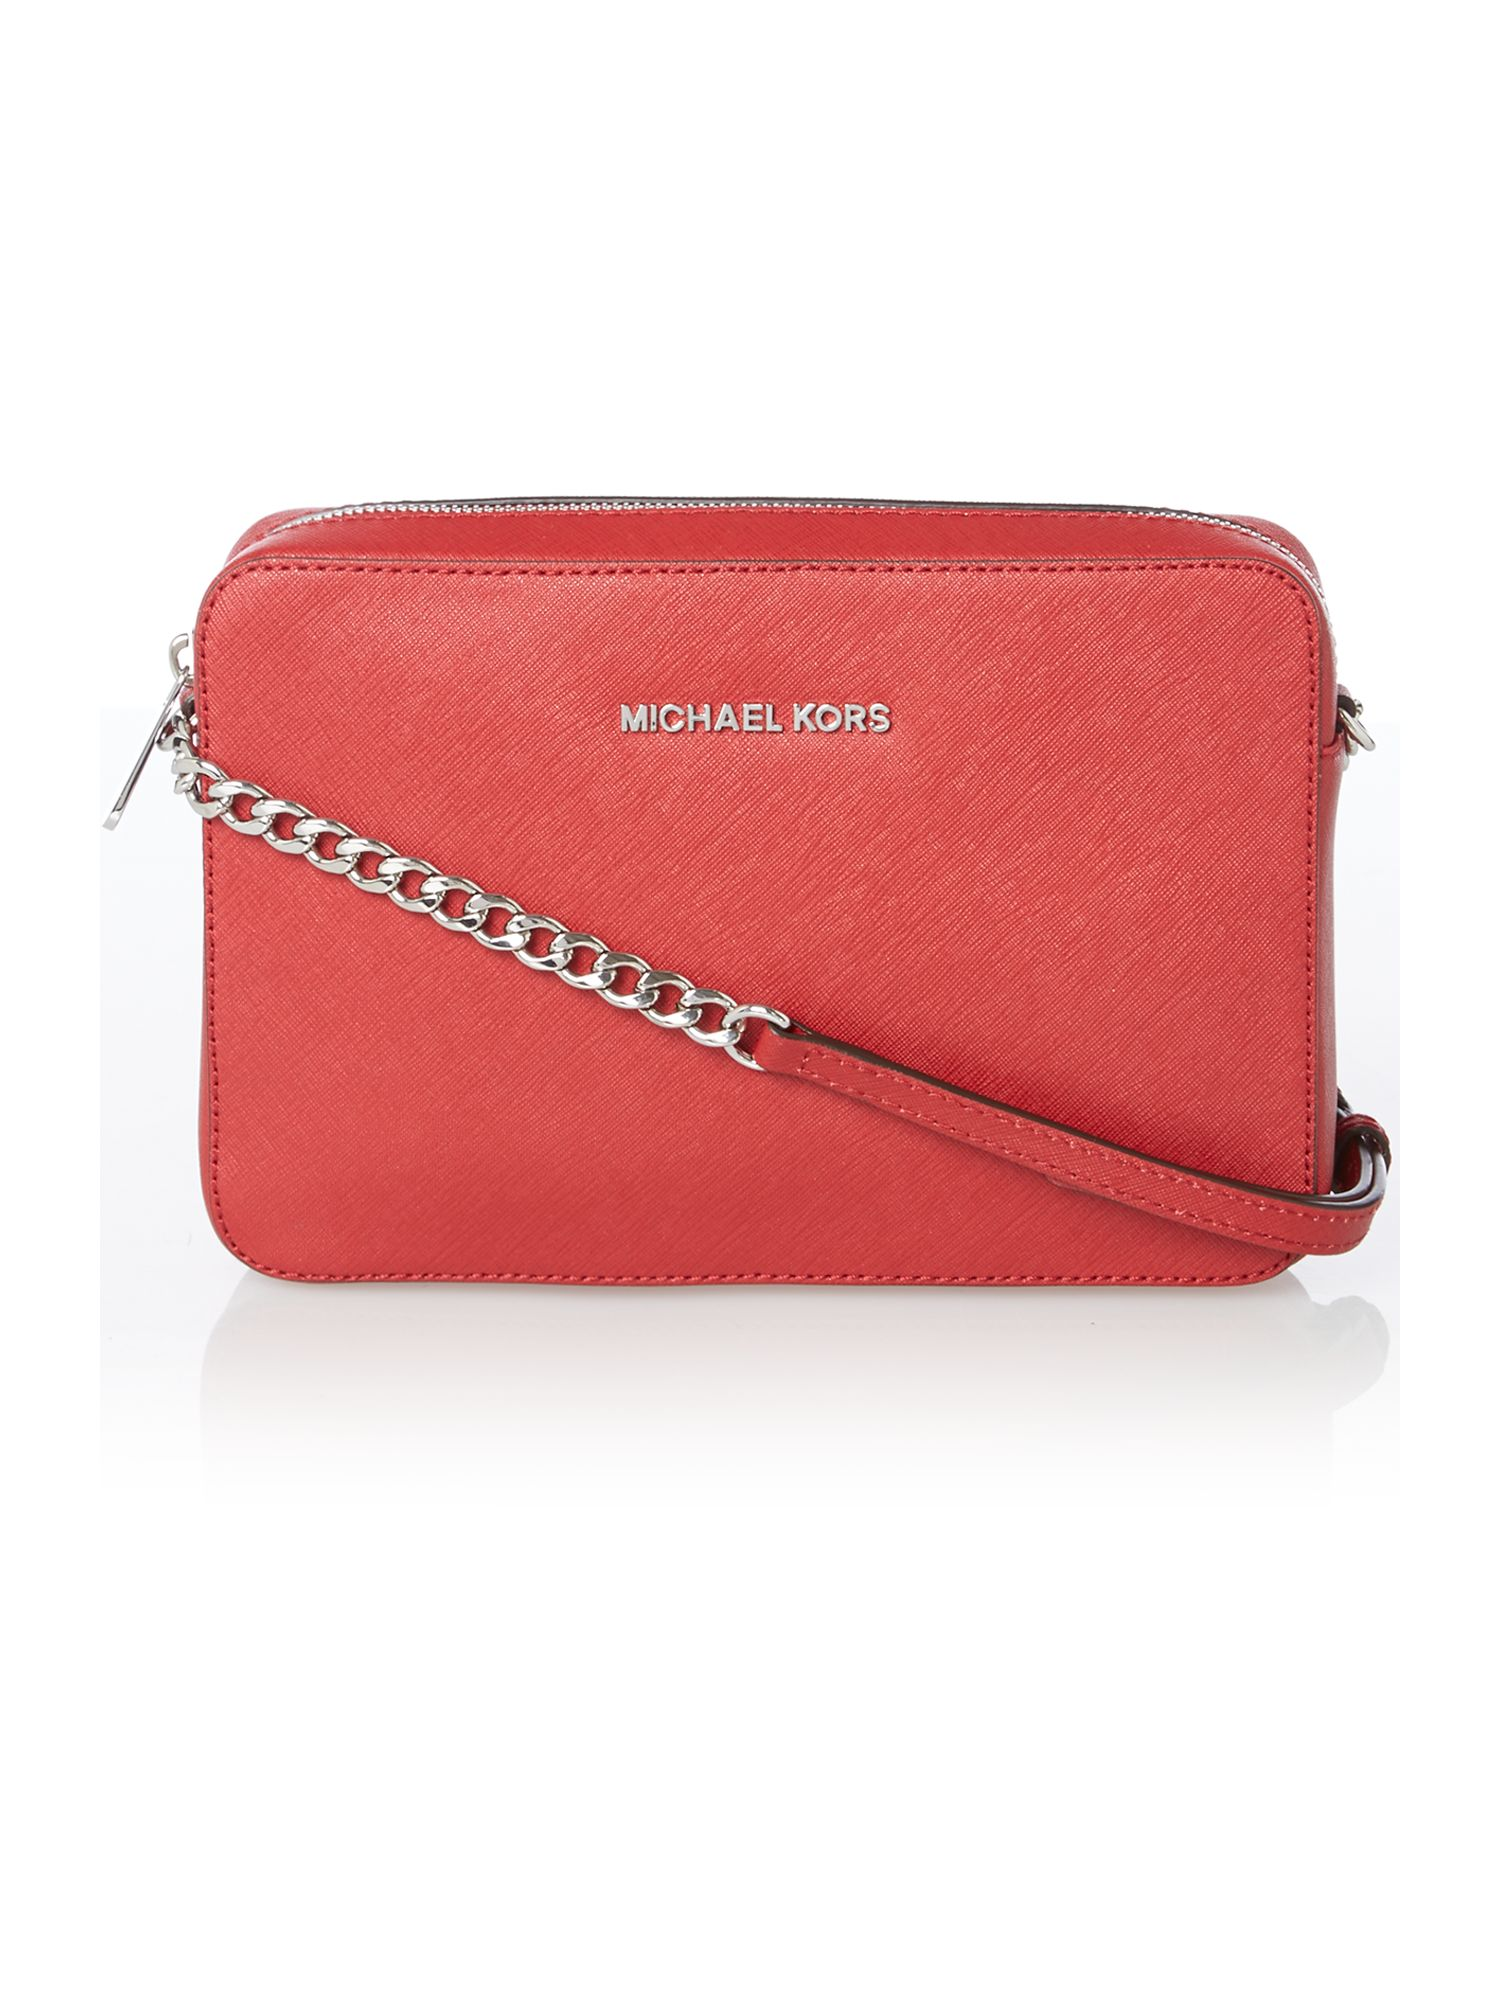 Jet set travel red medium cross body bag